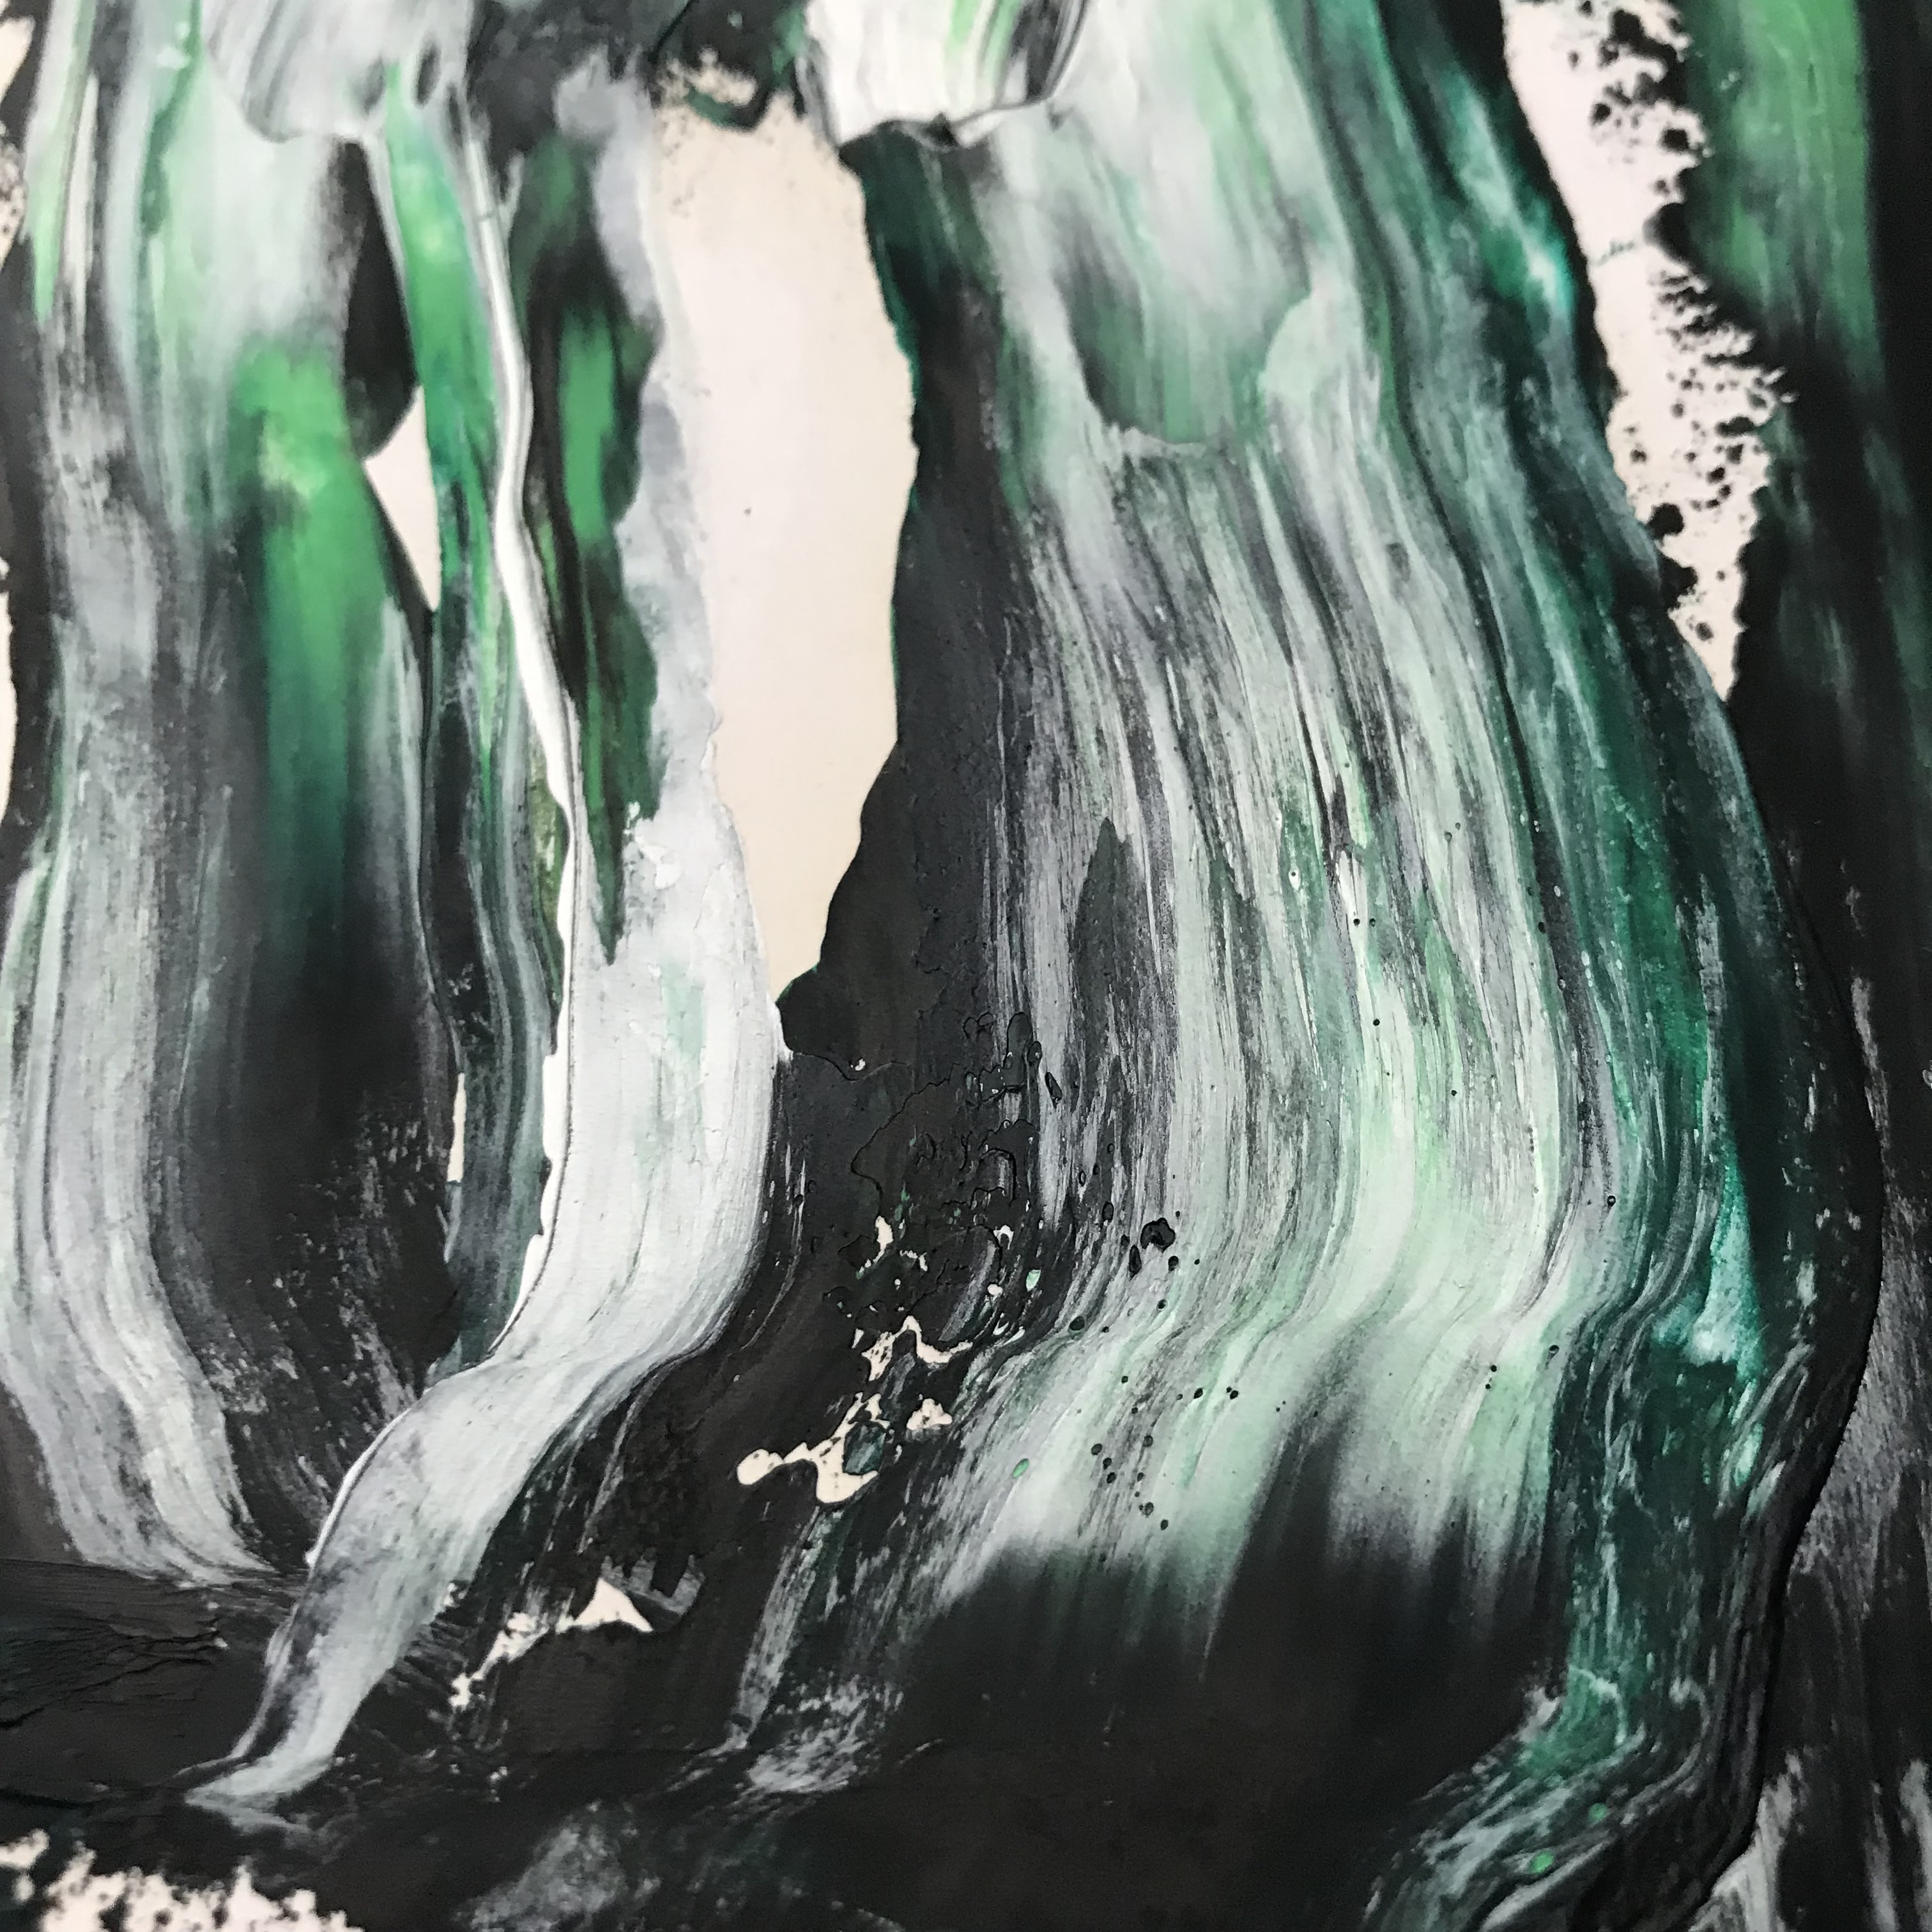 black, white, and teal abstract painting